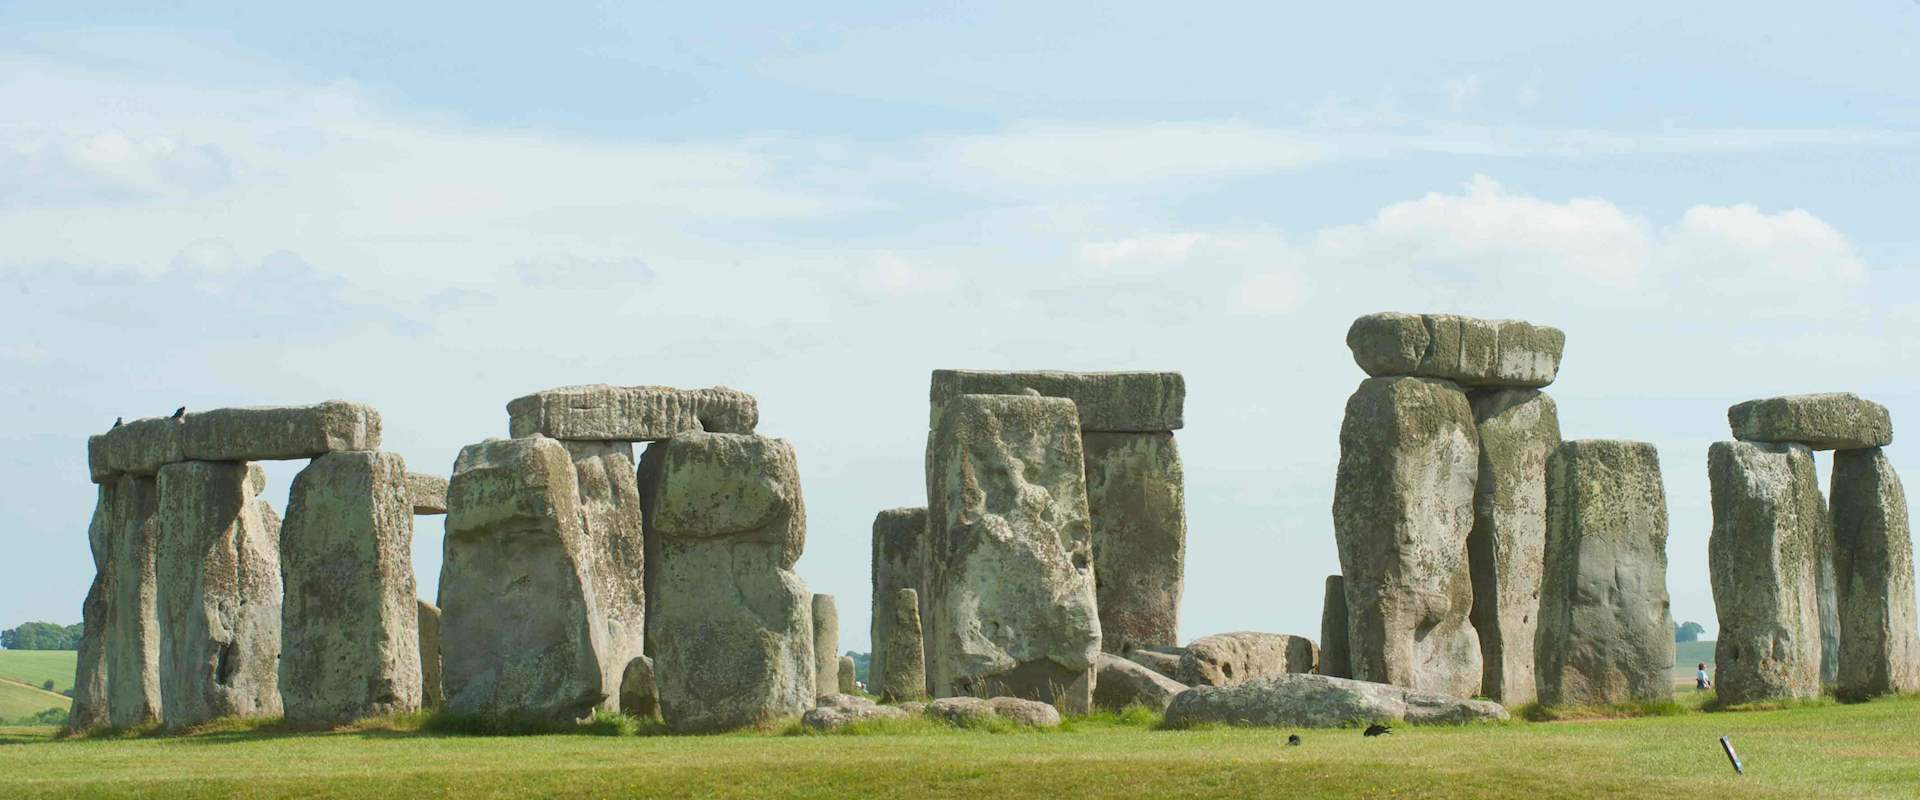 Stonehenge Amp Bath Tours From London Top Rated Tours